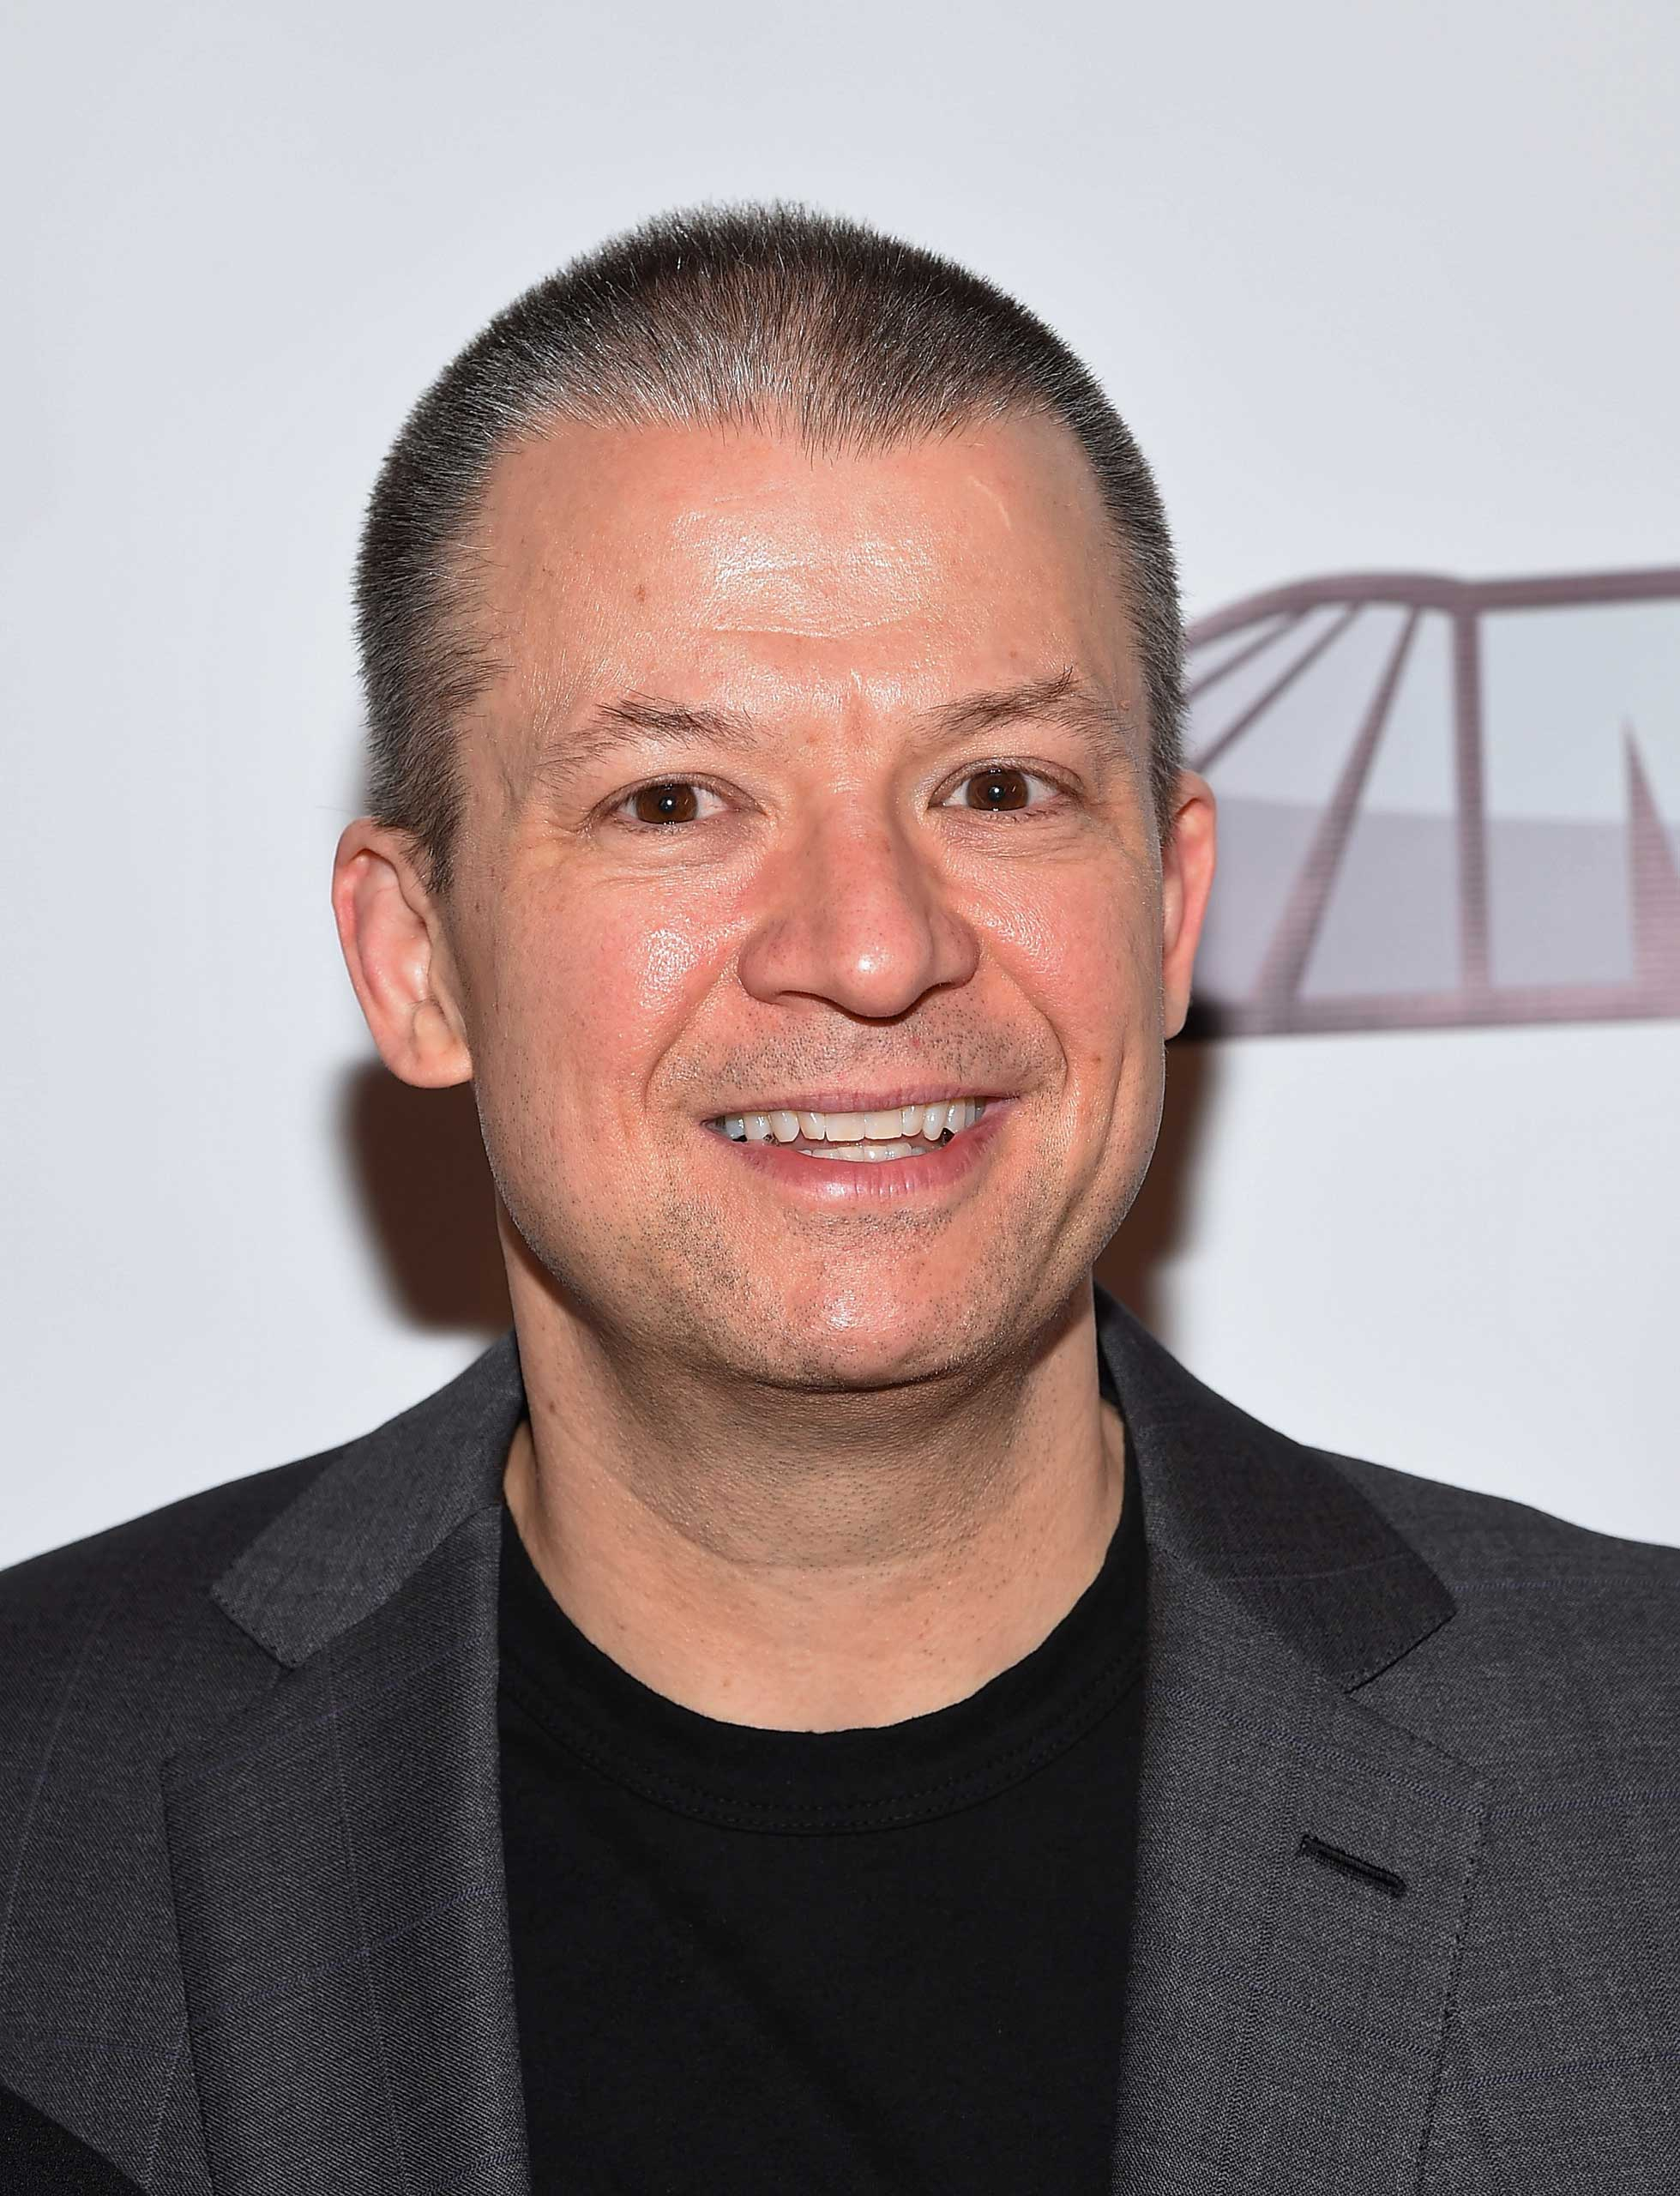 Comedian Jim Norton attends MSG Networks Original Programming Party at Madison Square Garden on February 5, 2015 in New York City.